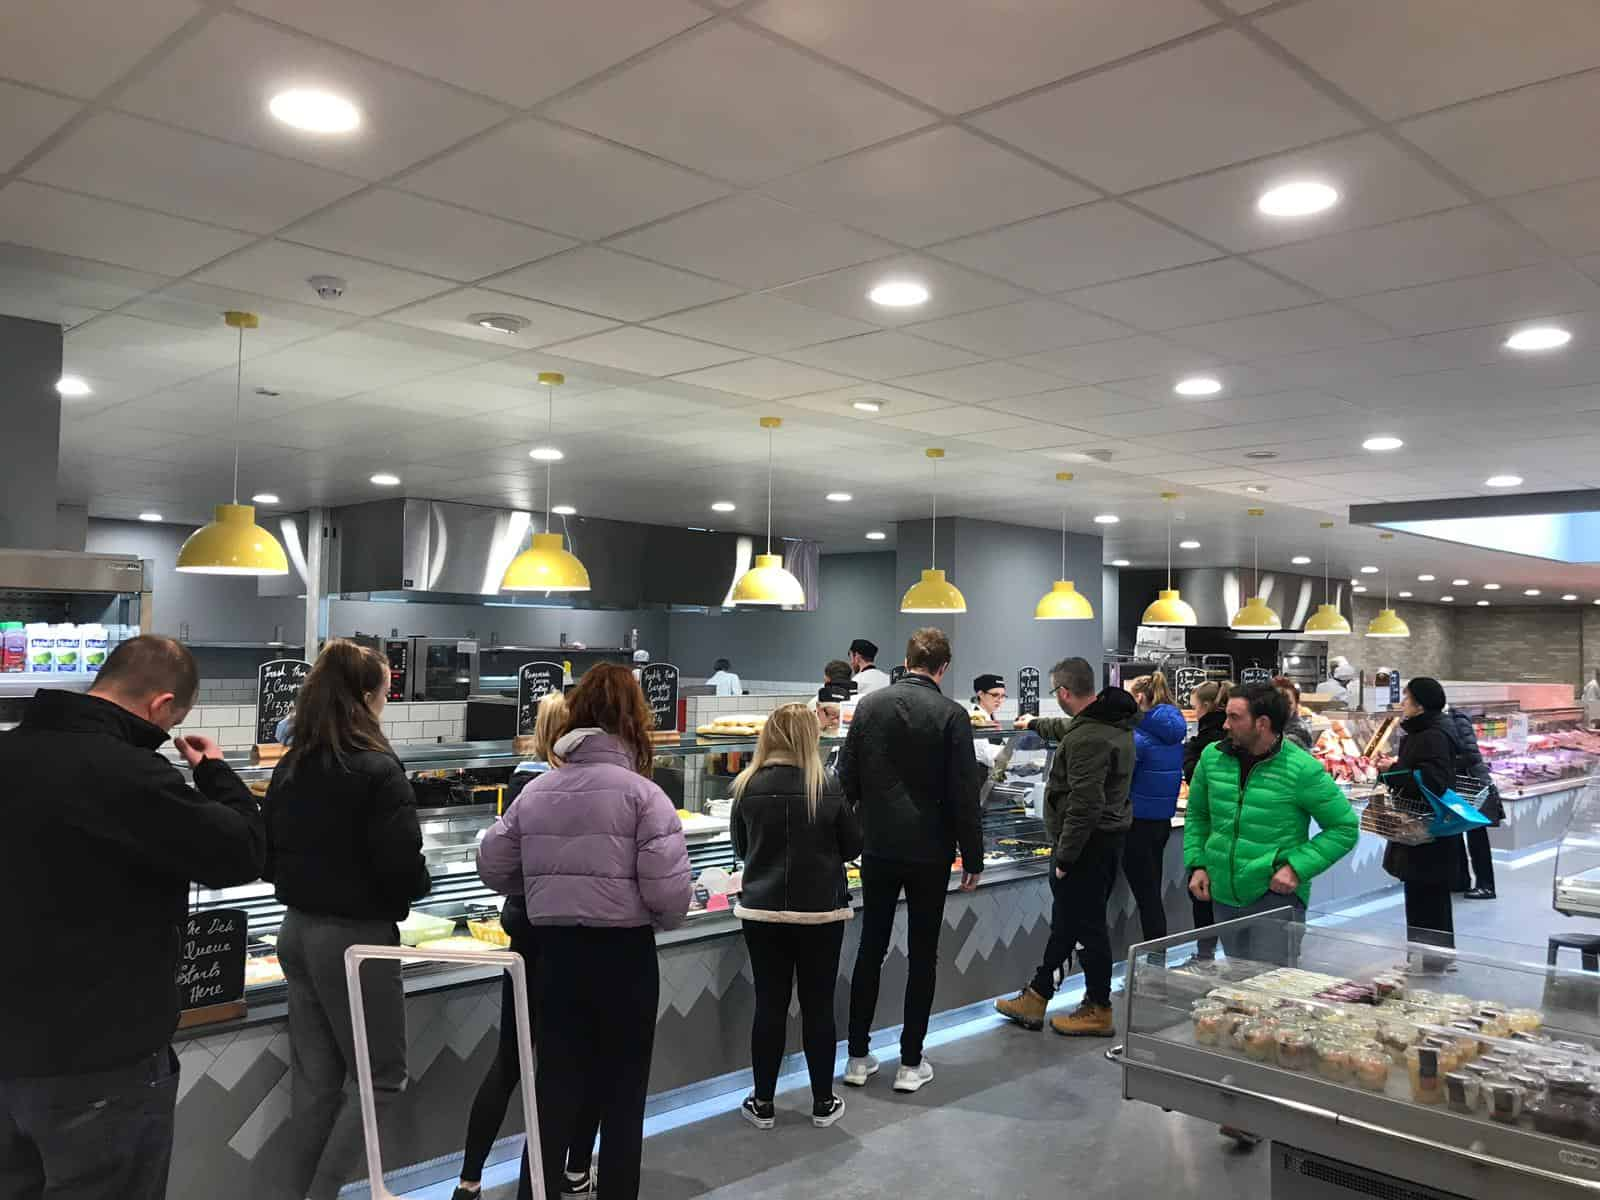 Martin Food Equipment Deli-Area-Centra-Greendale-Kilbarrack McHugh's Centra, Greendale, Kilbarrack, Dublin Installations